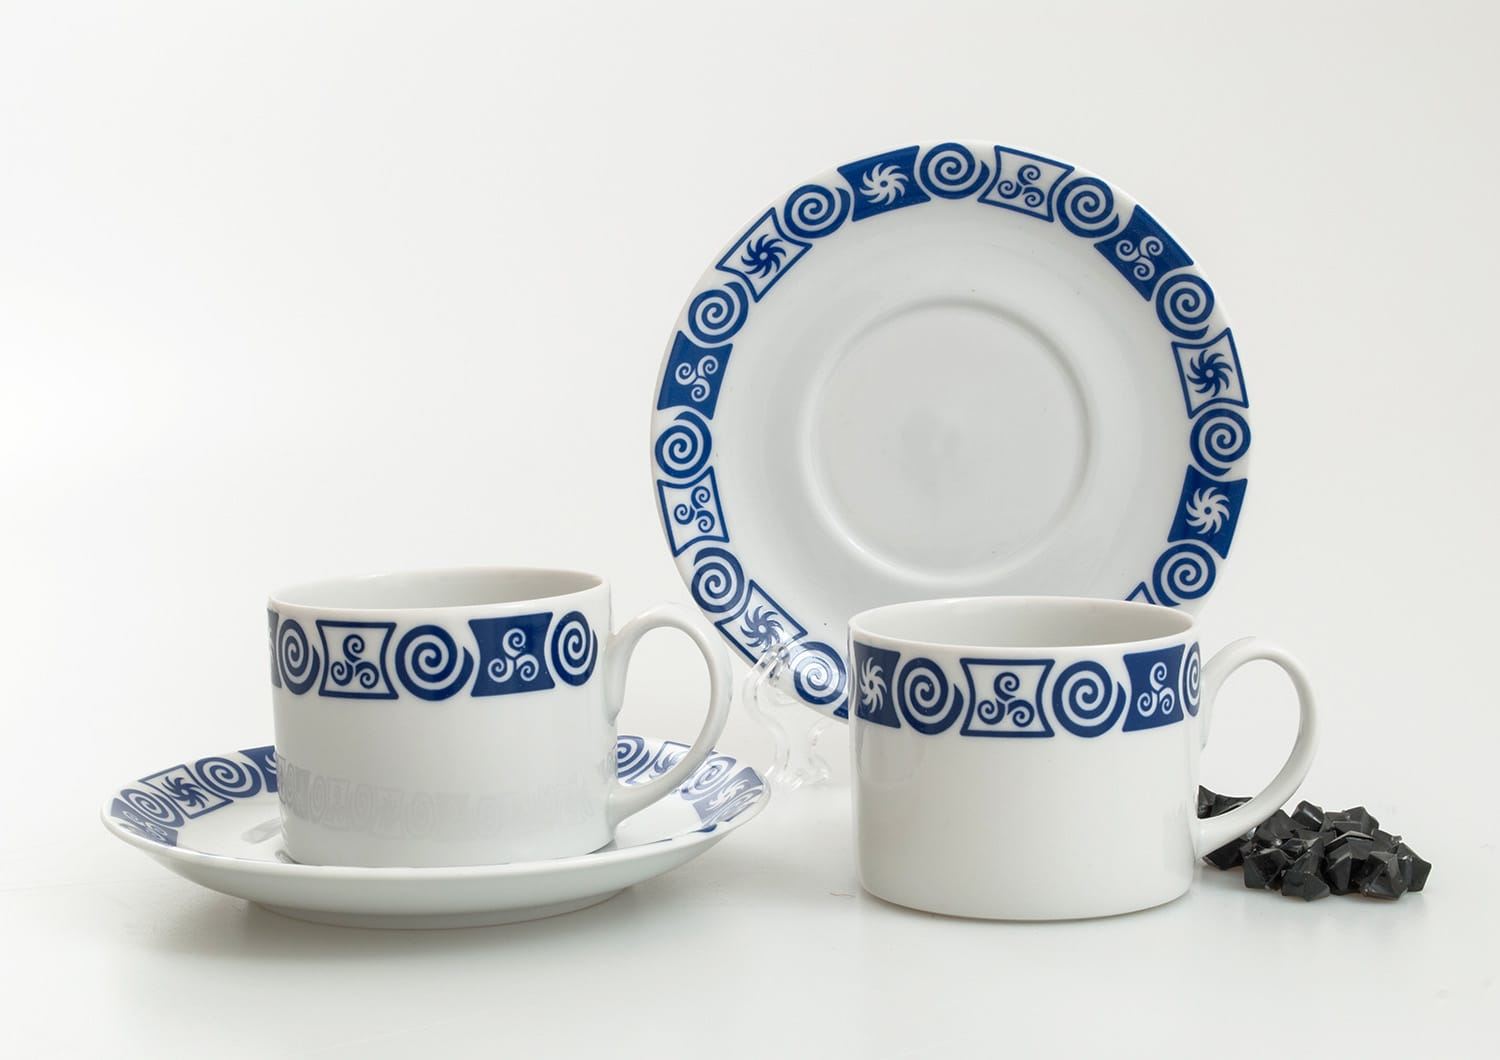 Tea cup and saucer. Pombal design.